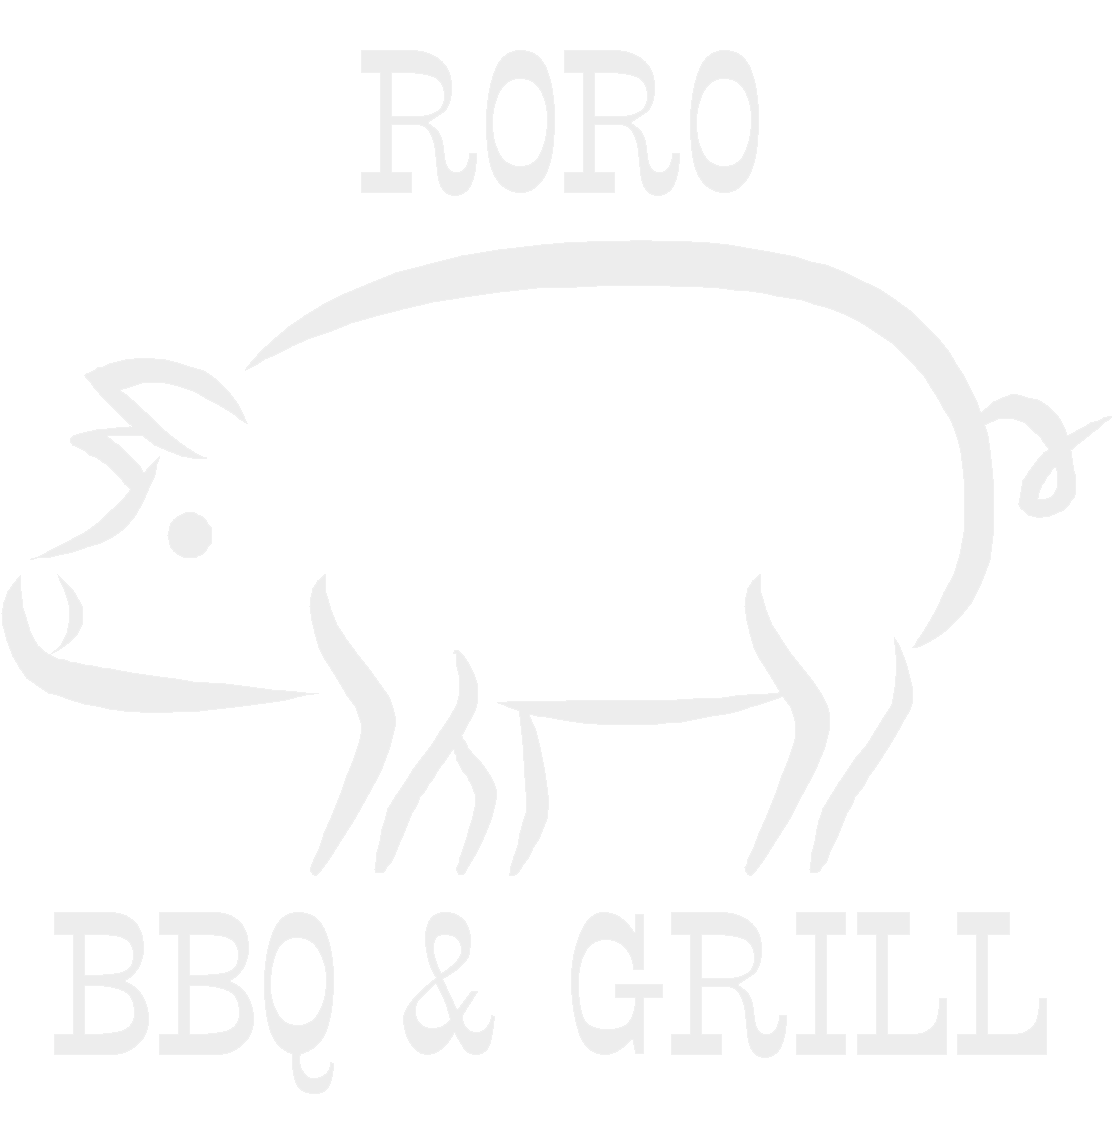 RoRo BBQ & Grill Seattle